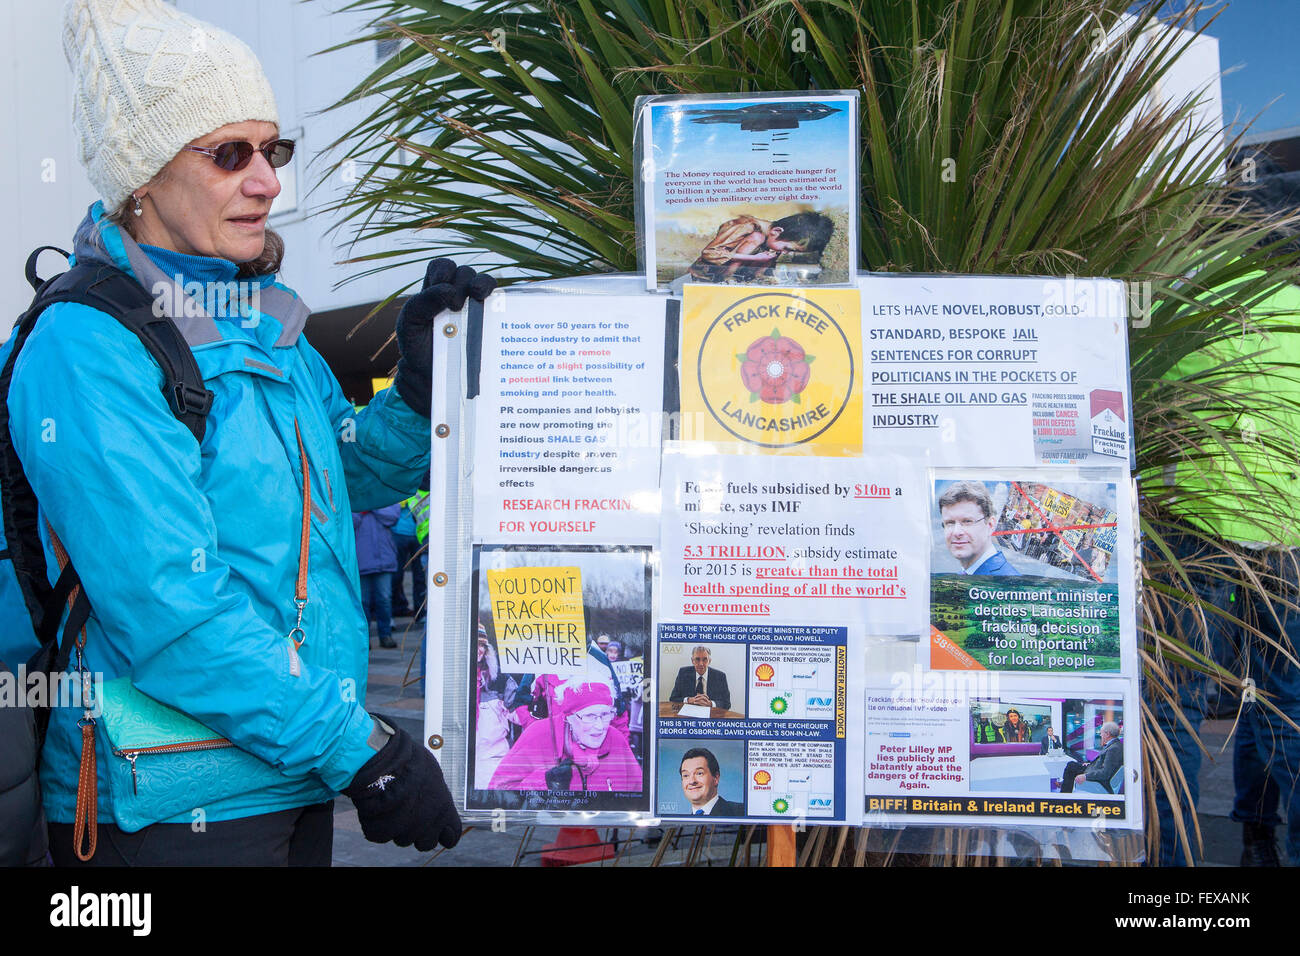 Blackpool, Lancashire, UK 9th February, 2016. Protesters against the Cuadrilla appeal to allow shale gas drilling Stock Photo